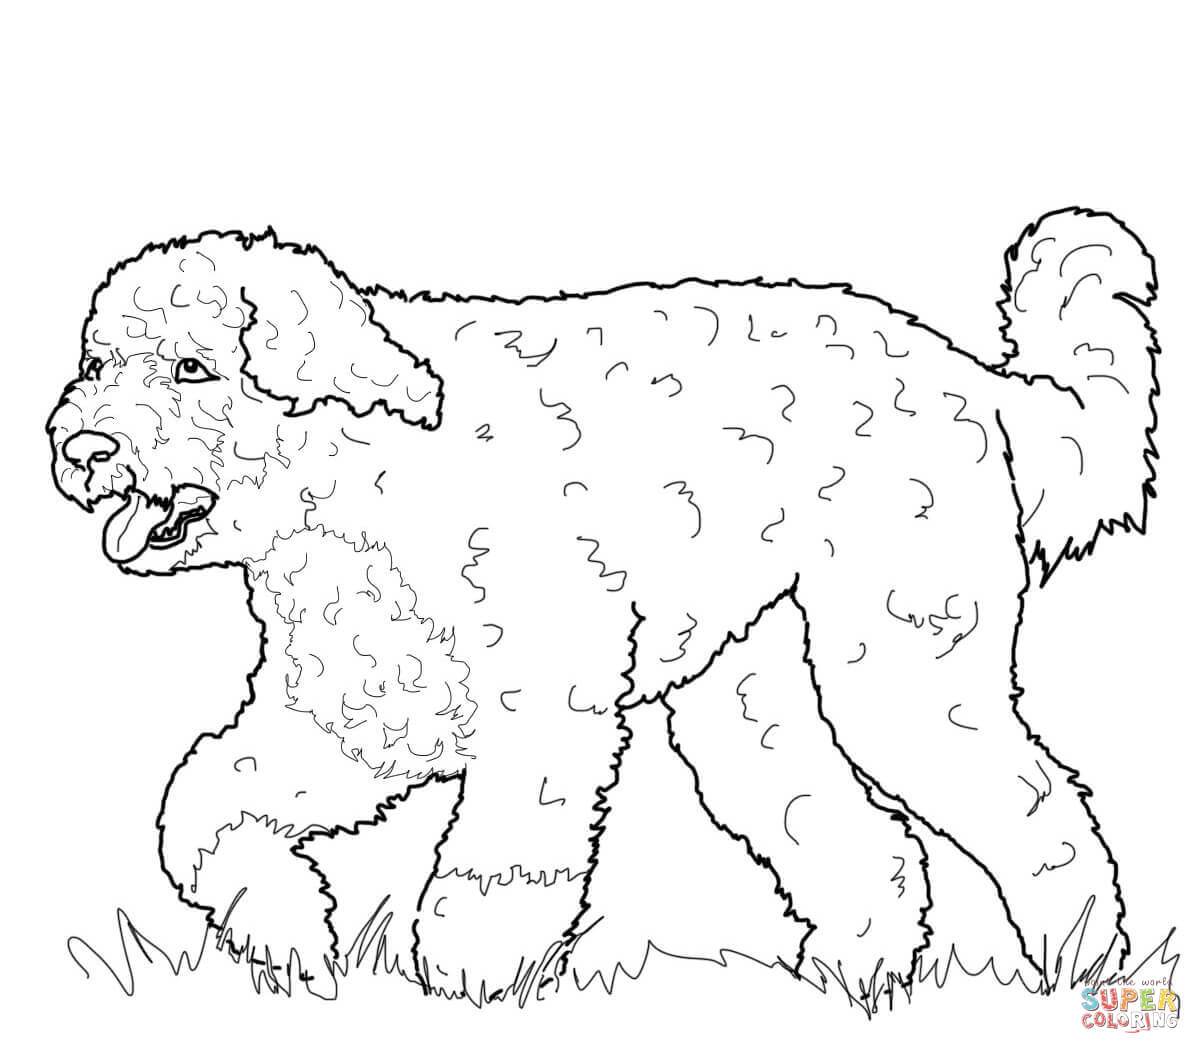 Portuguese Water Dog Coloring Page